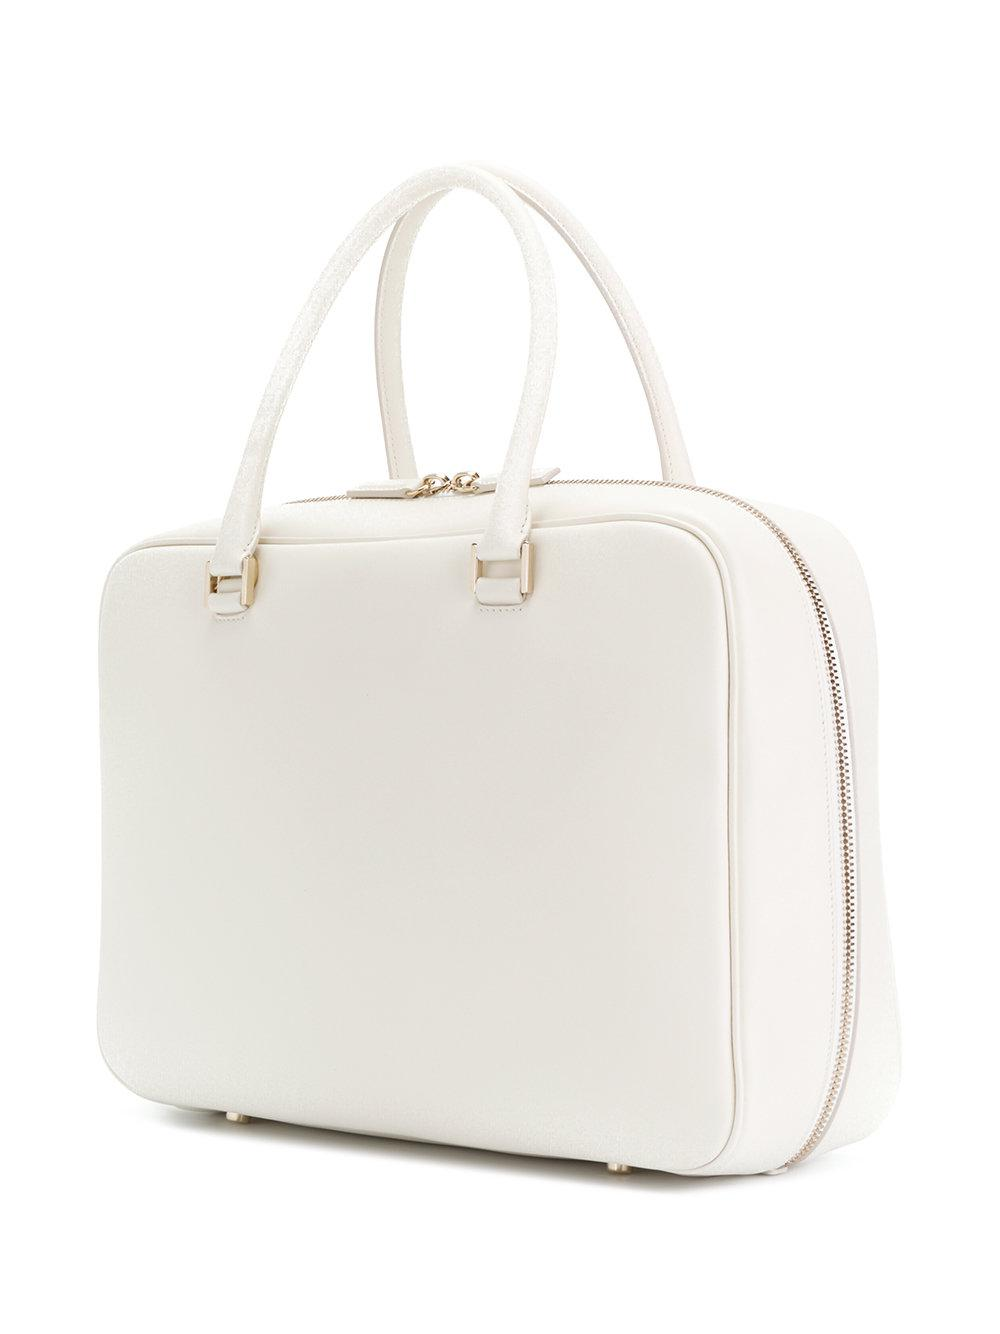 Jil Sander Leather Large Tote Bag in White